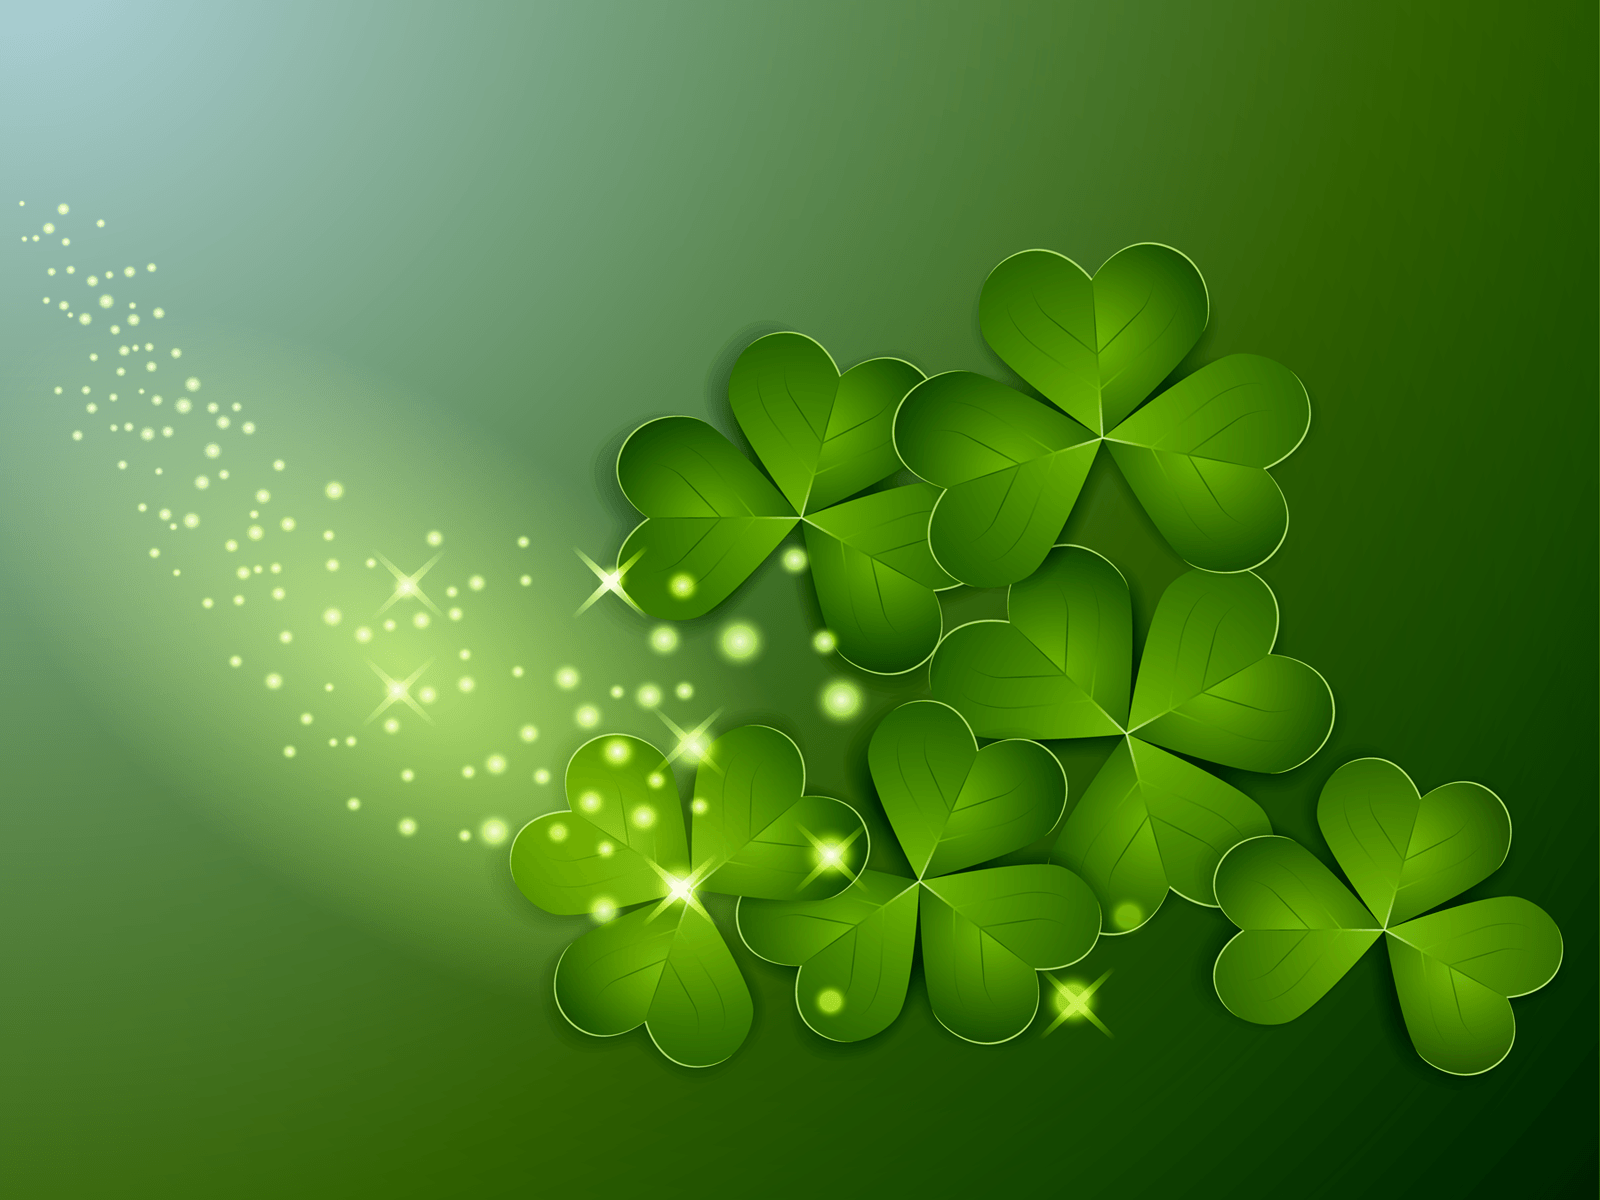 1000+ images about *St. Patrick's Day* on Pinterest | Irish dance ...